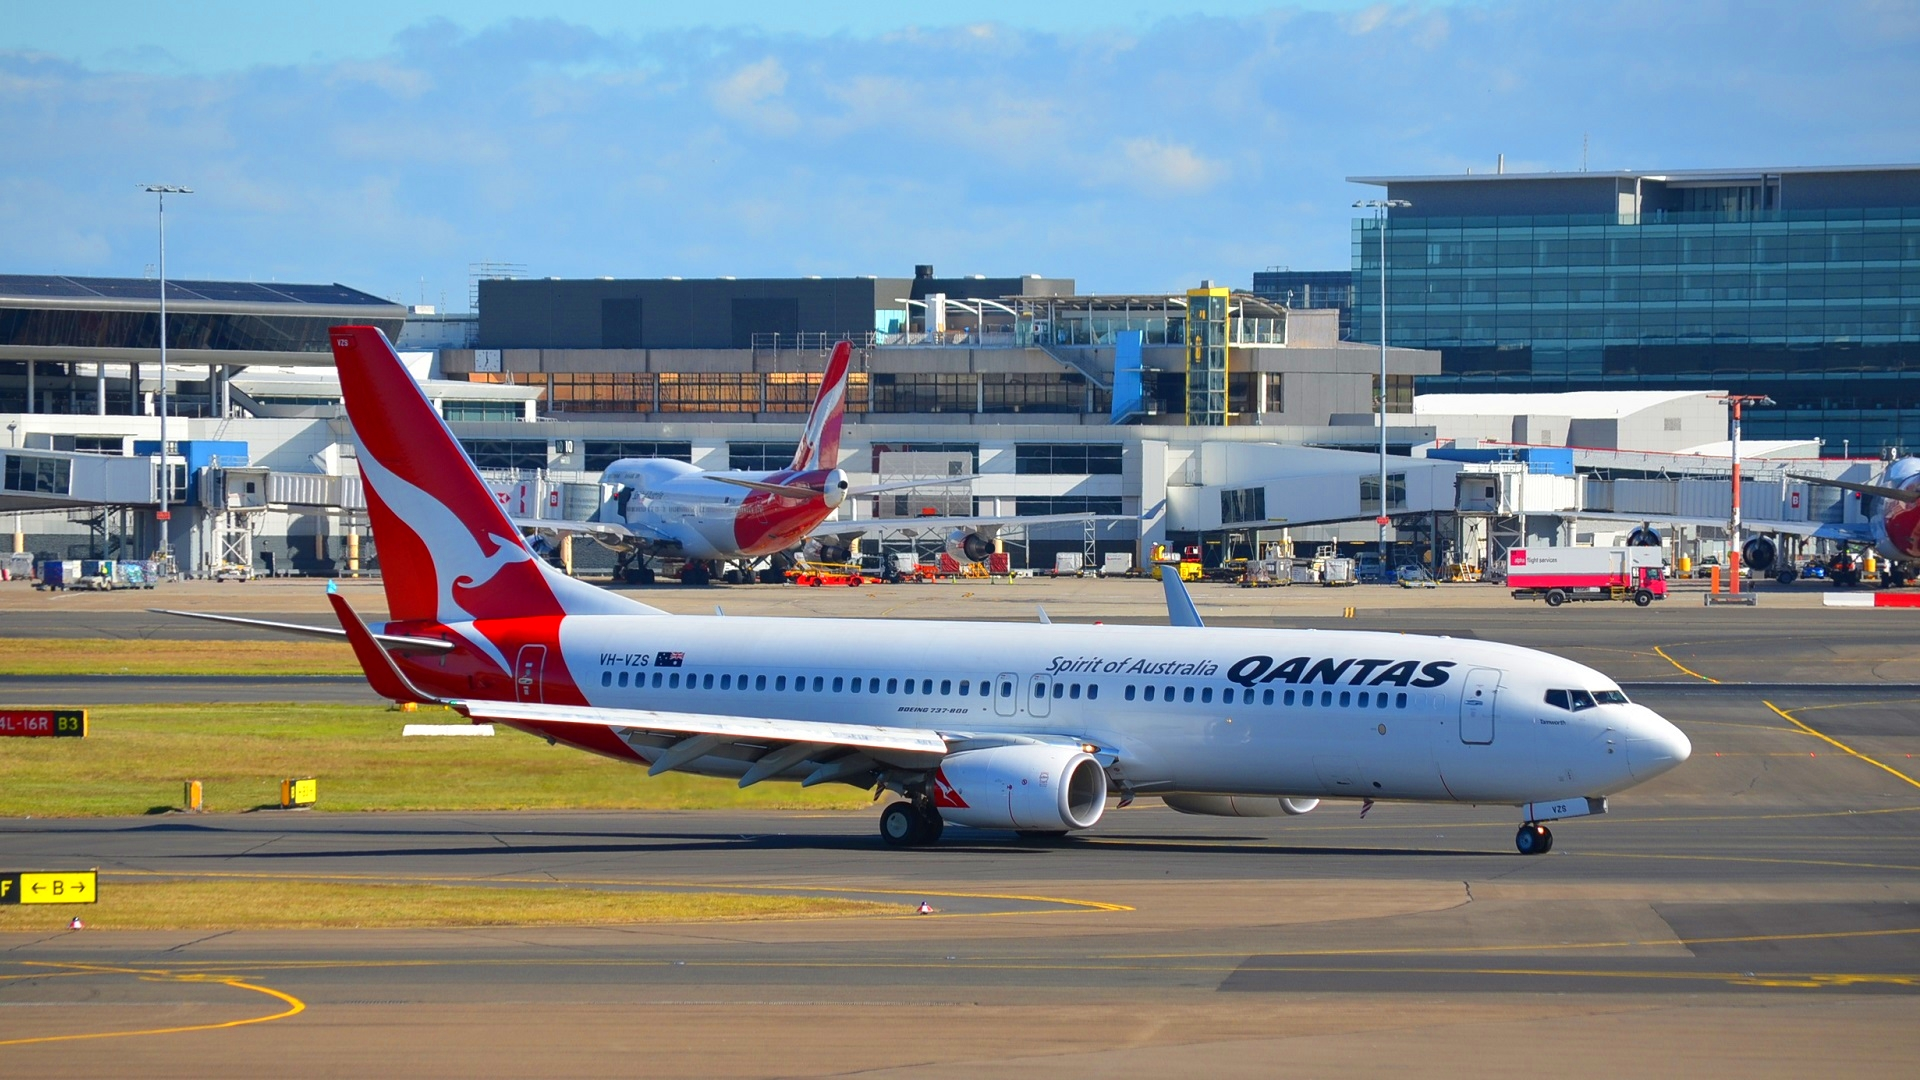 Vh vzs boeing 737 838 qantas at sydney airport hd - Boeing wallpapers for desktop ...